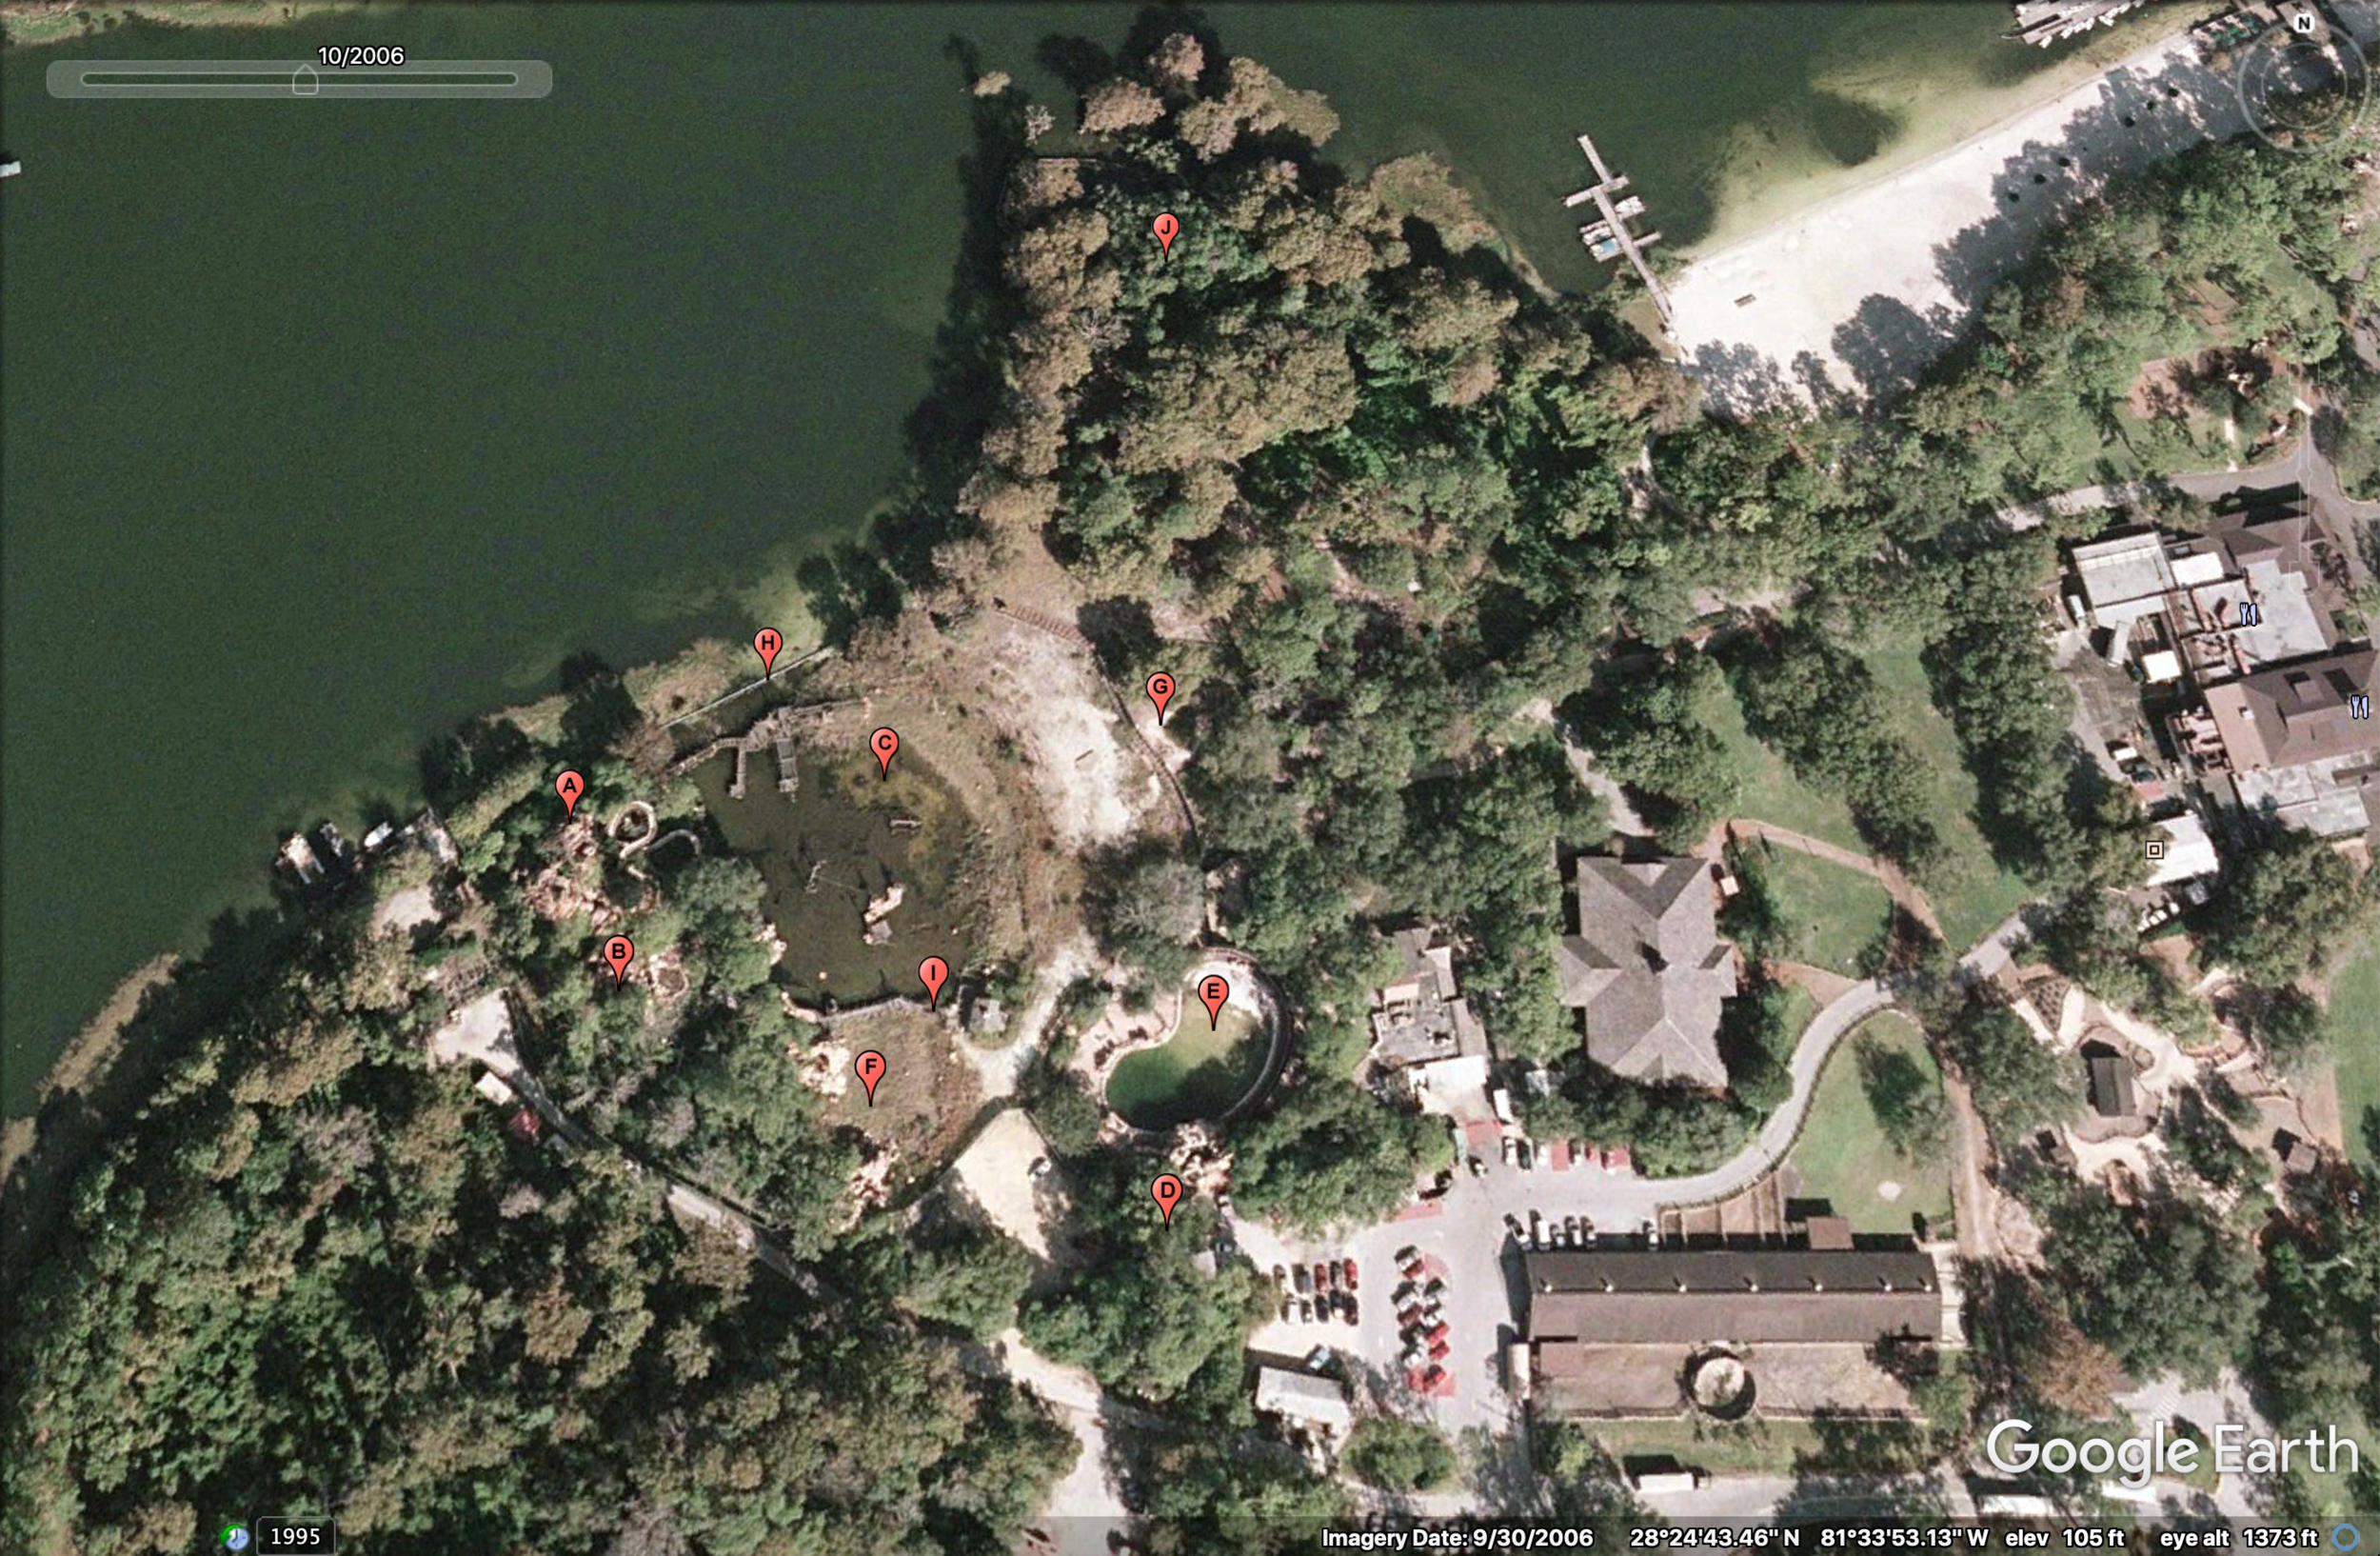 Aerial of River Country in October 2006, nearly five years after closing. Red pins represent each of the park's attractions. A) Whoop 'n Holler Hollow; B) White Water Rapids; C) Bay Cove Pool; D) Slippery Slide Falls; E) Upspring Plunge; F) Kiddie Kove; G) Indian Springs; H) Bay Bridge; I) Barrel Bridge; J) Cypress Point Nature Trail (Photo: Google Earth, labeling by me)